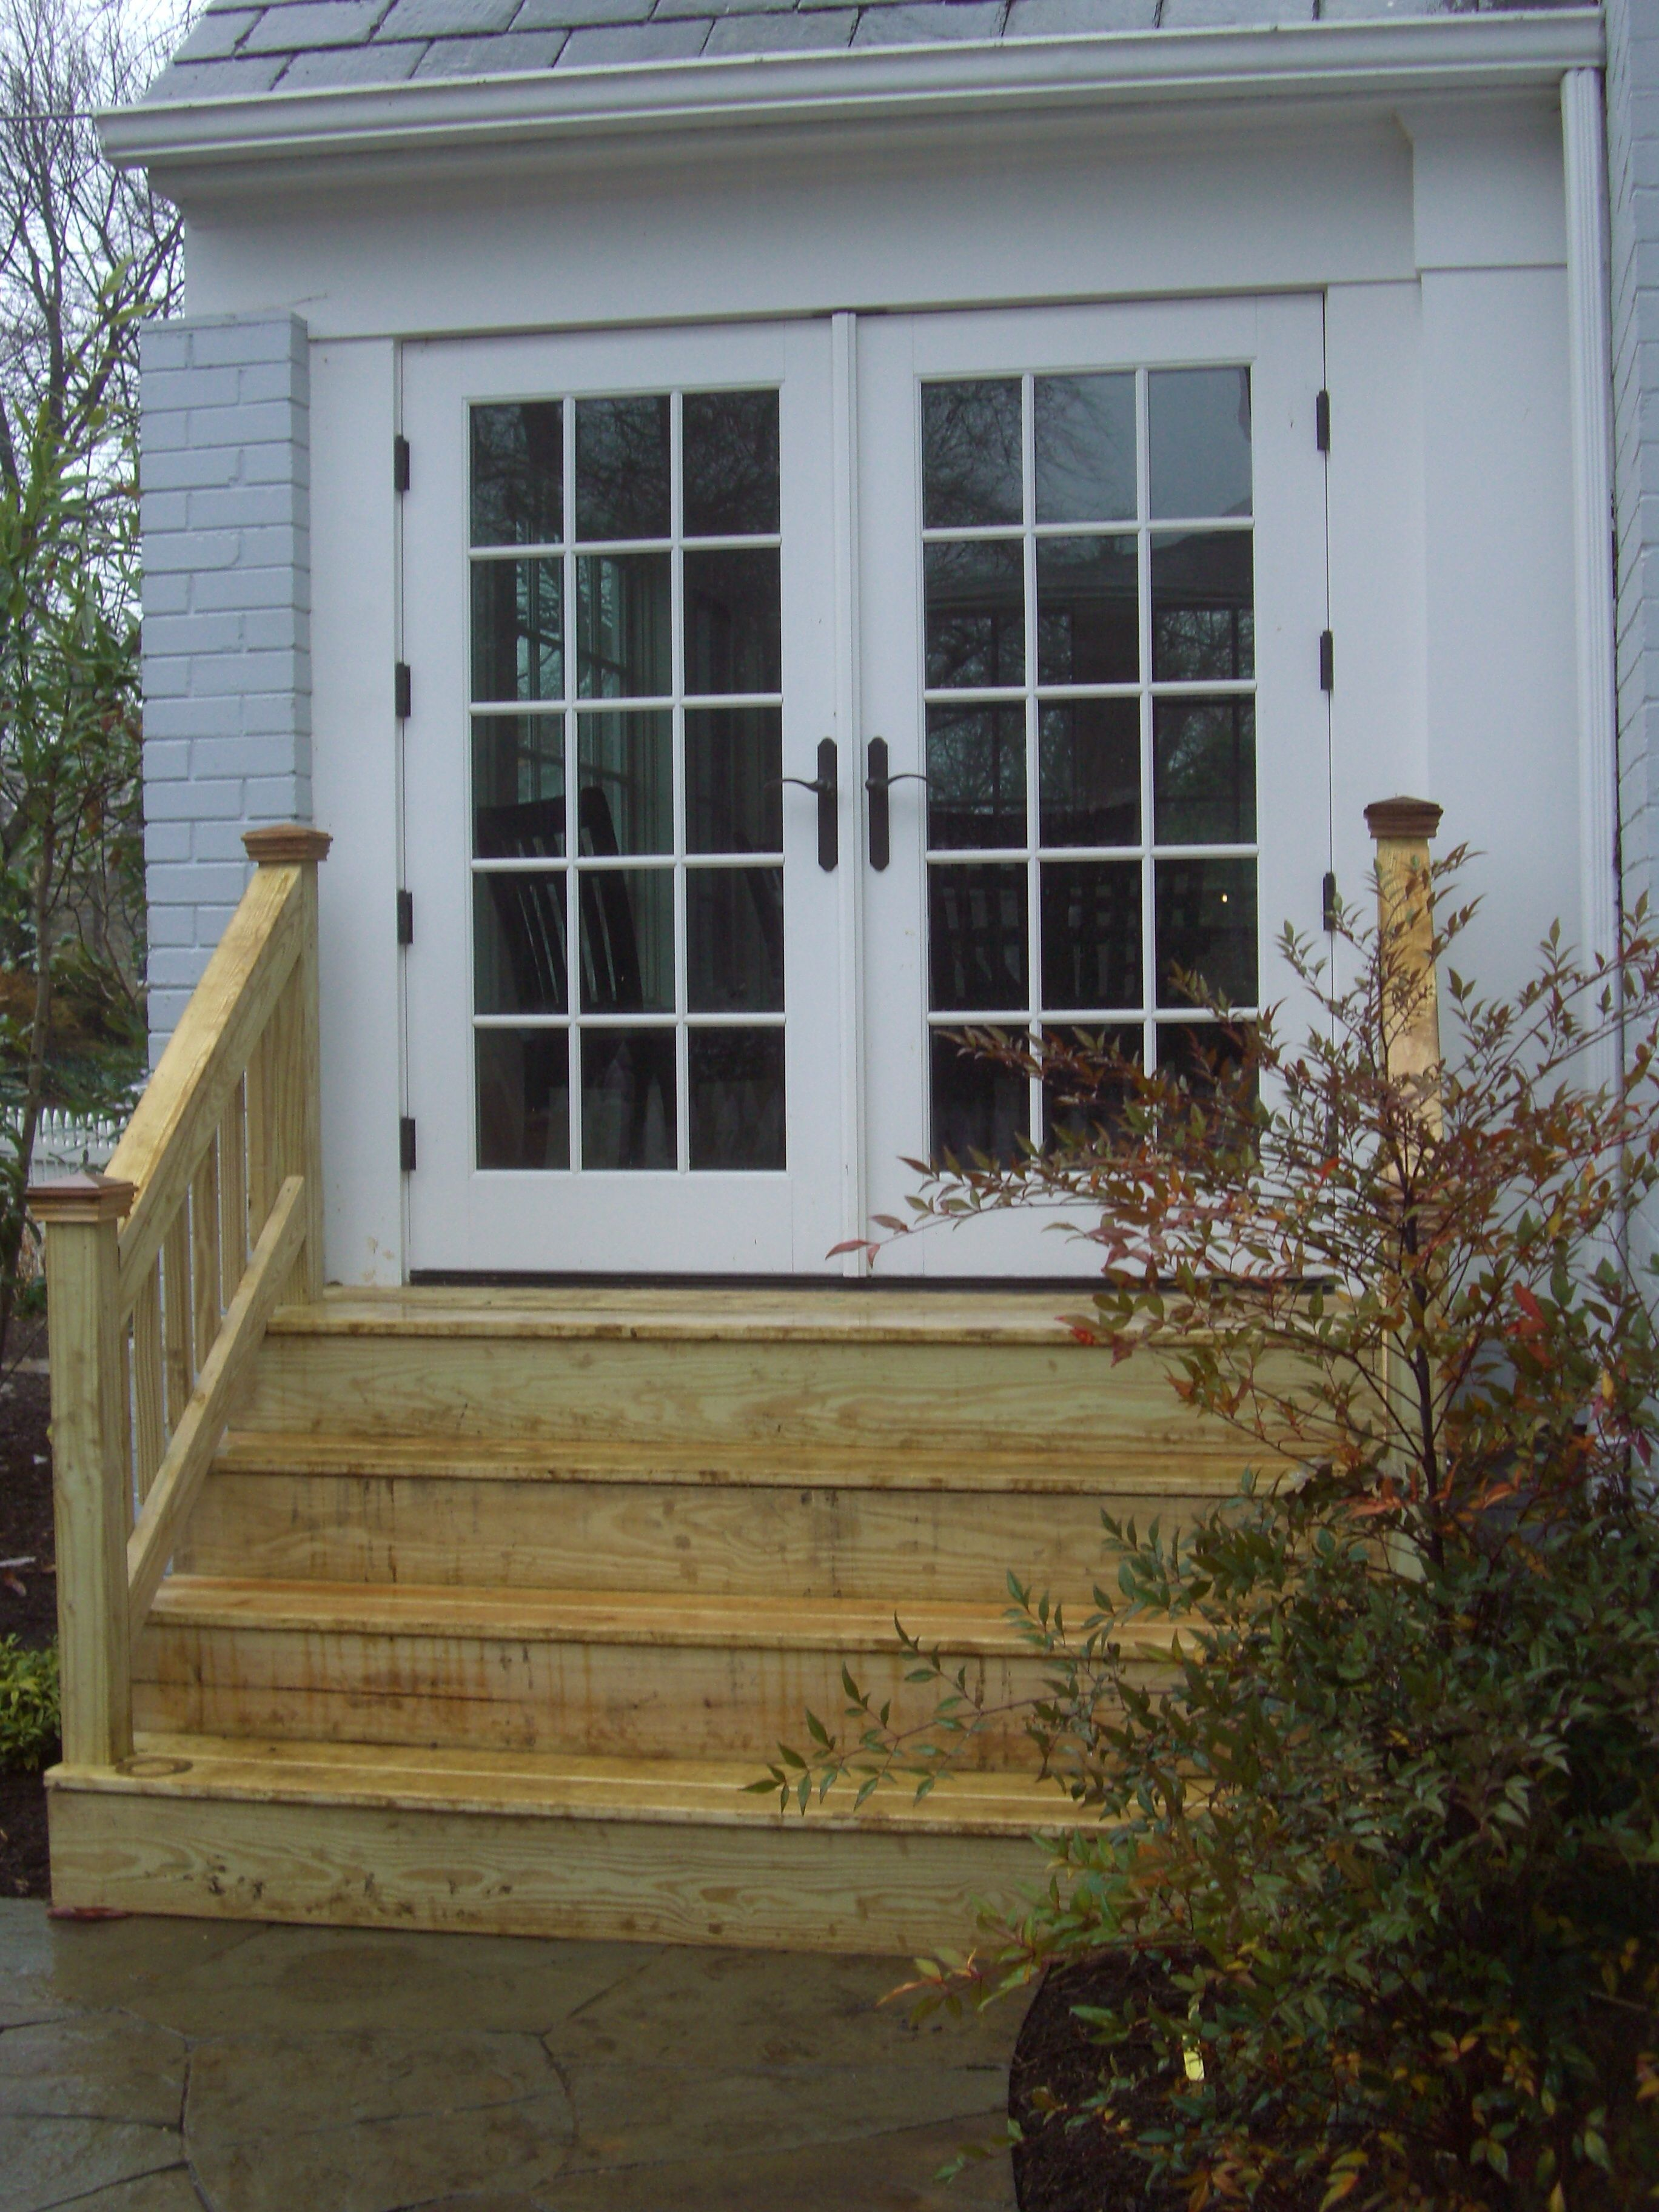 Wood Steps To French Doors Patio Stairs Patio Steps Patio | Outside Steps For House | Front Door | Entryway | Decorative | Ranch Style House | Beautiful